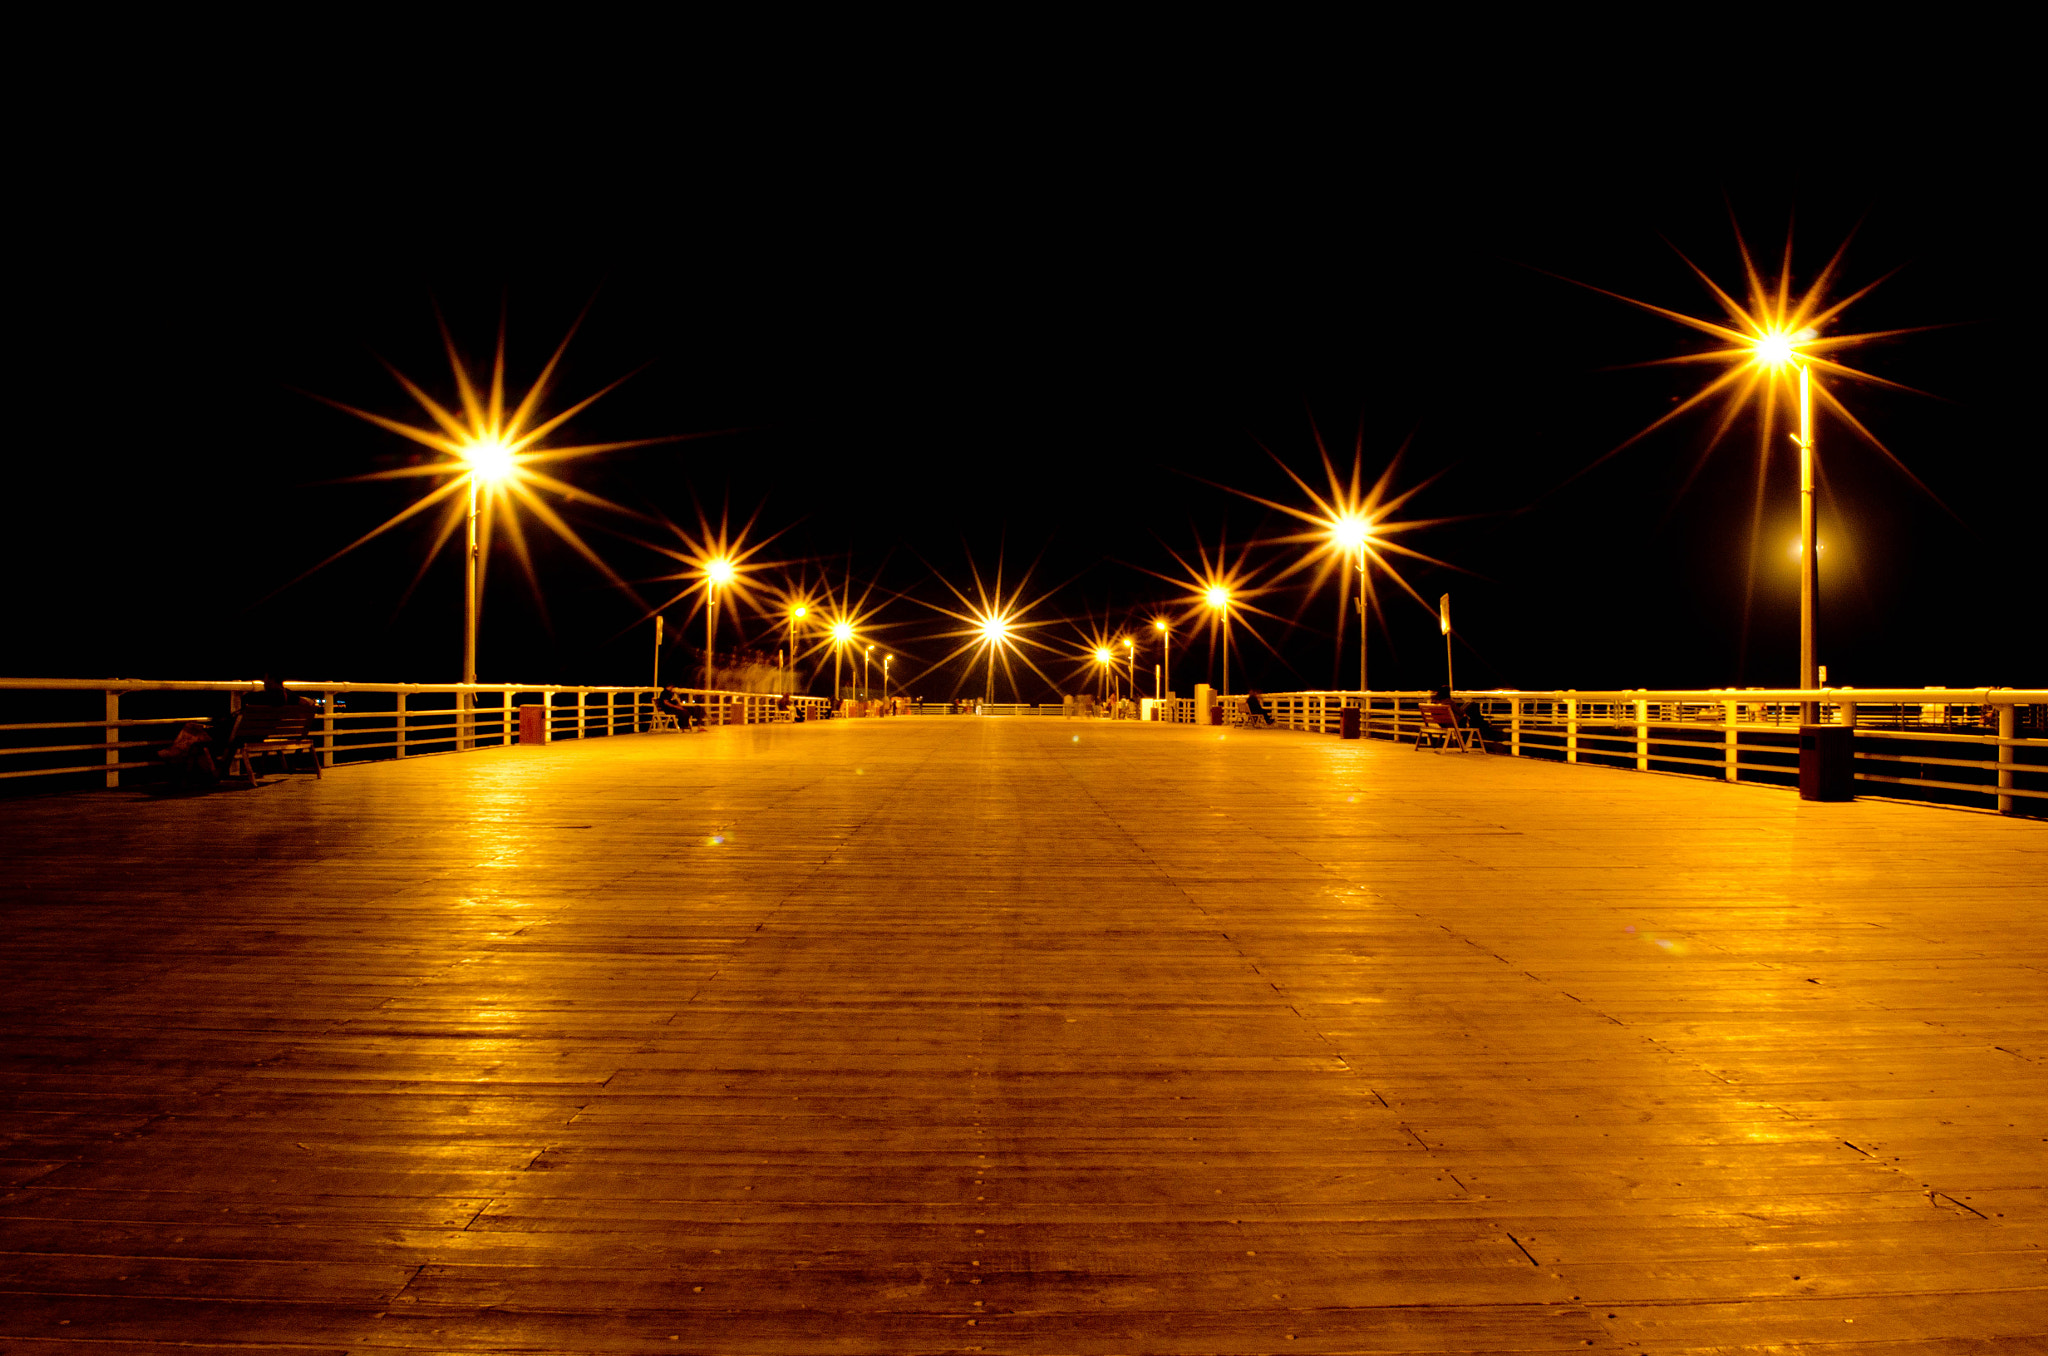 Photograph Boardwalk by Adonis Tividad on 500px